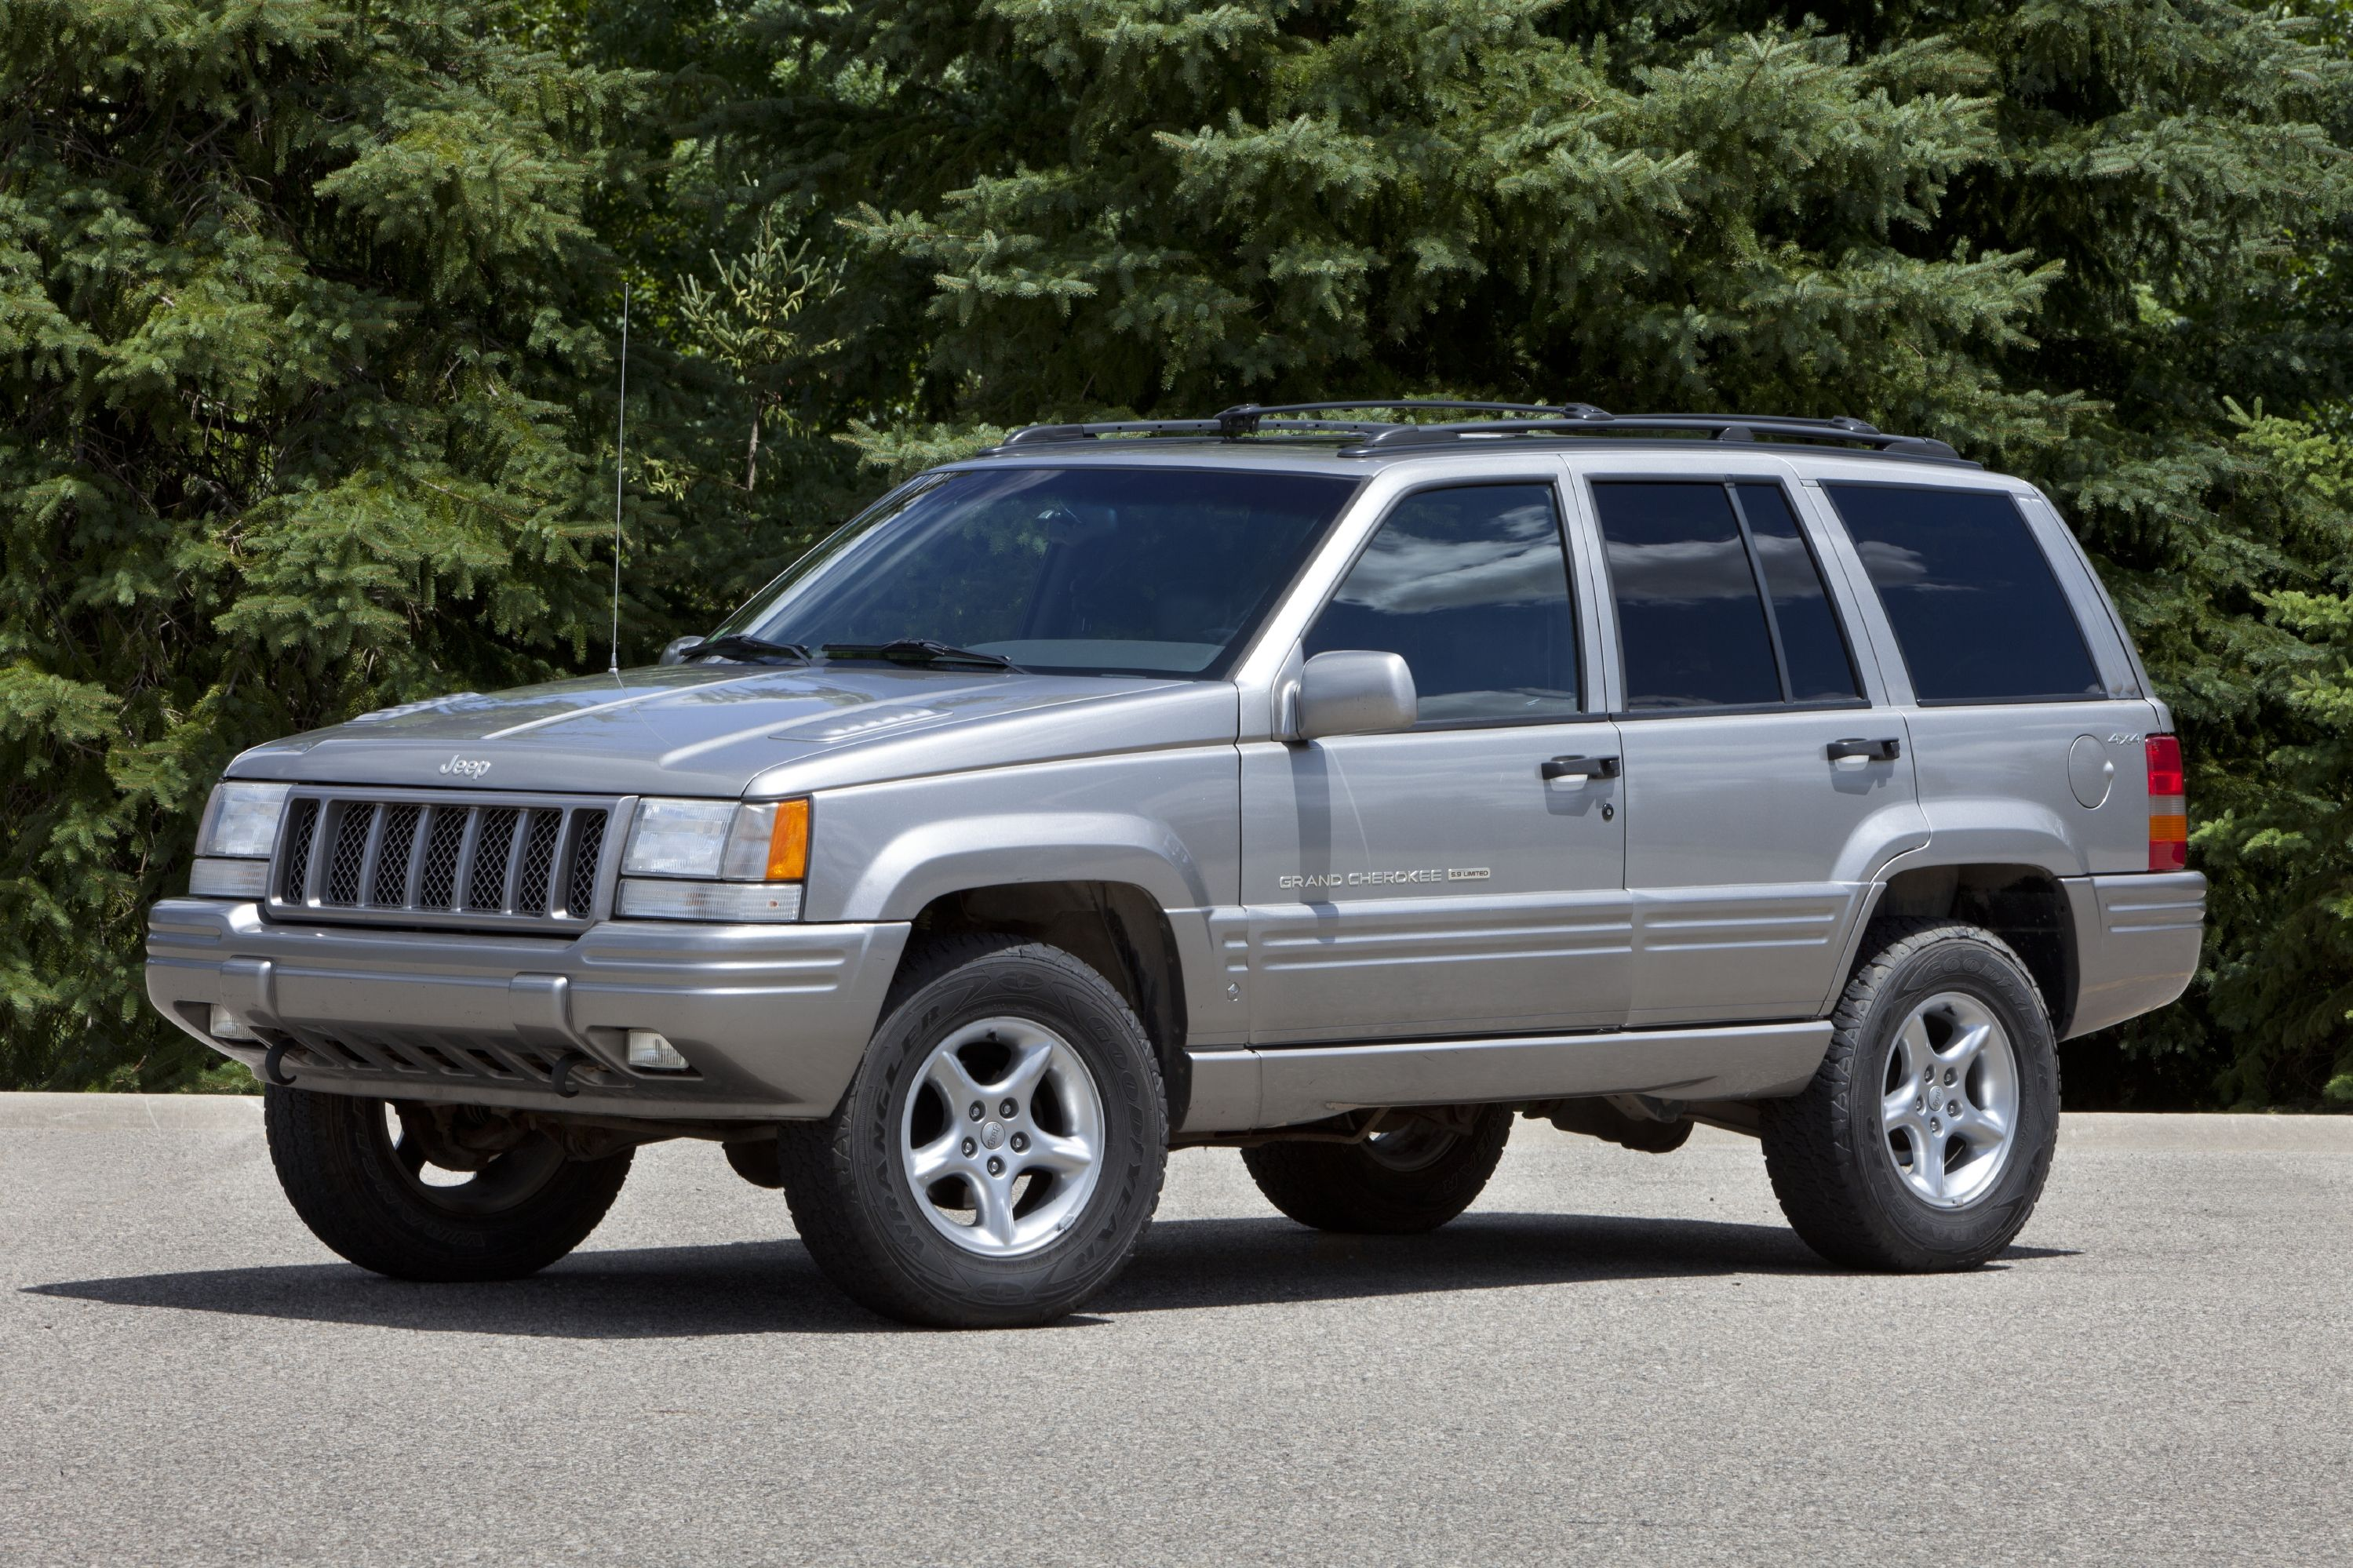 jeep invented the high-performance suv, too